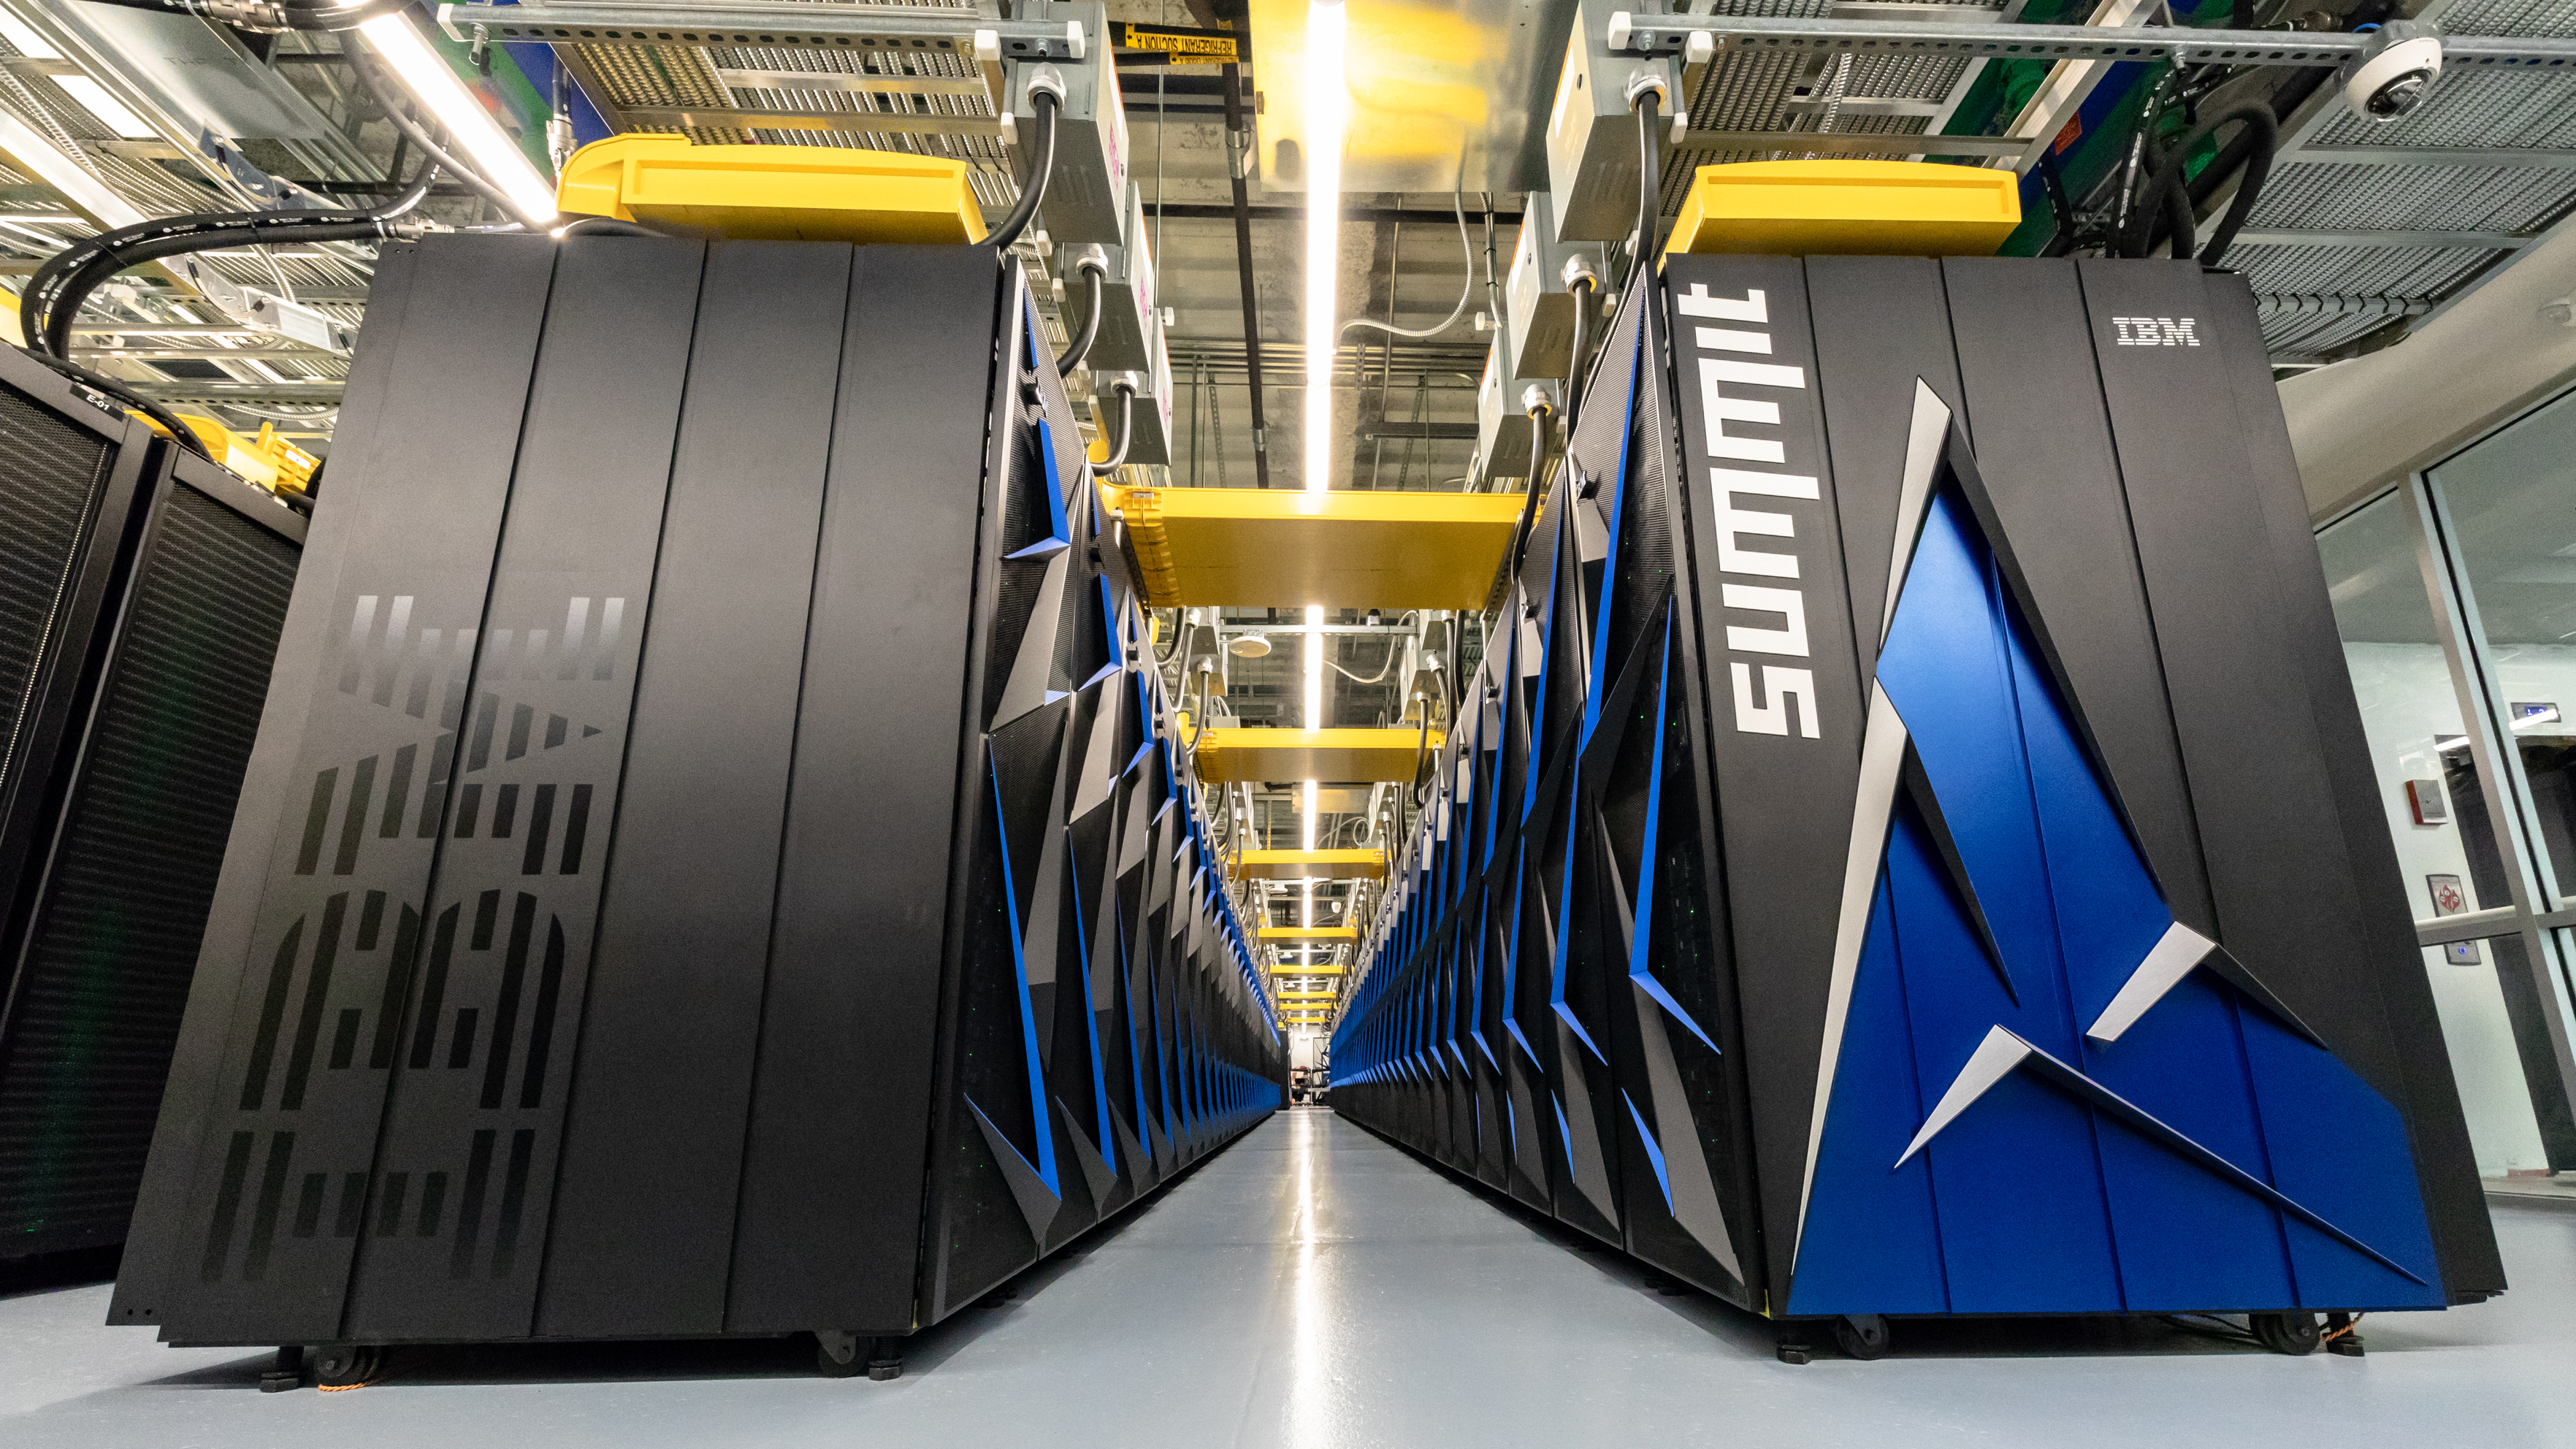 The Summit supercomputer, the world's fastest computer as of June 2018.